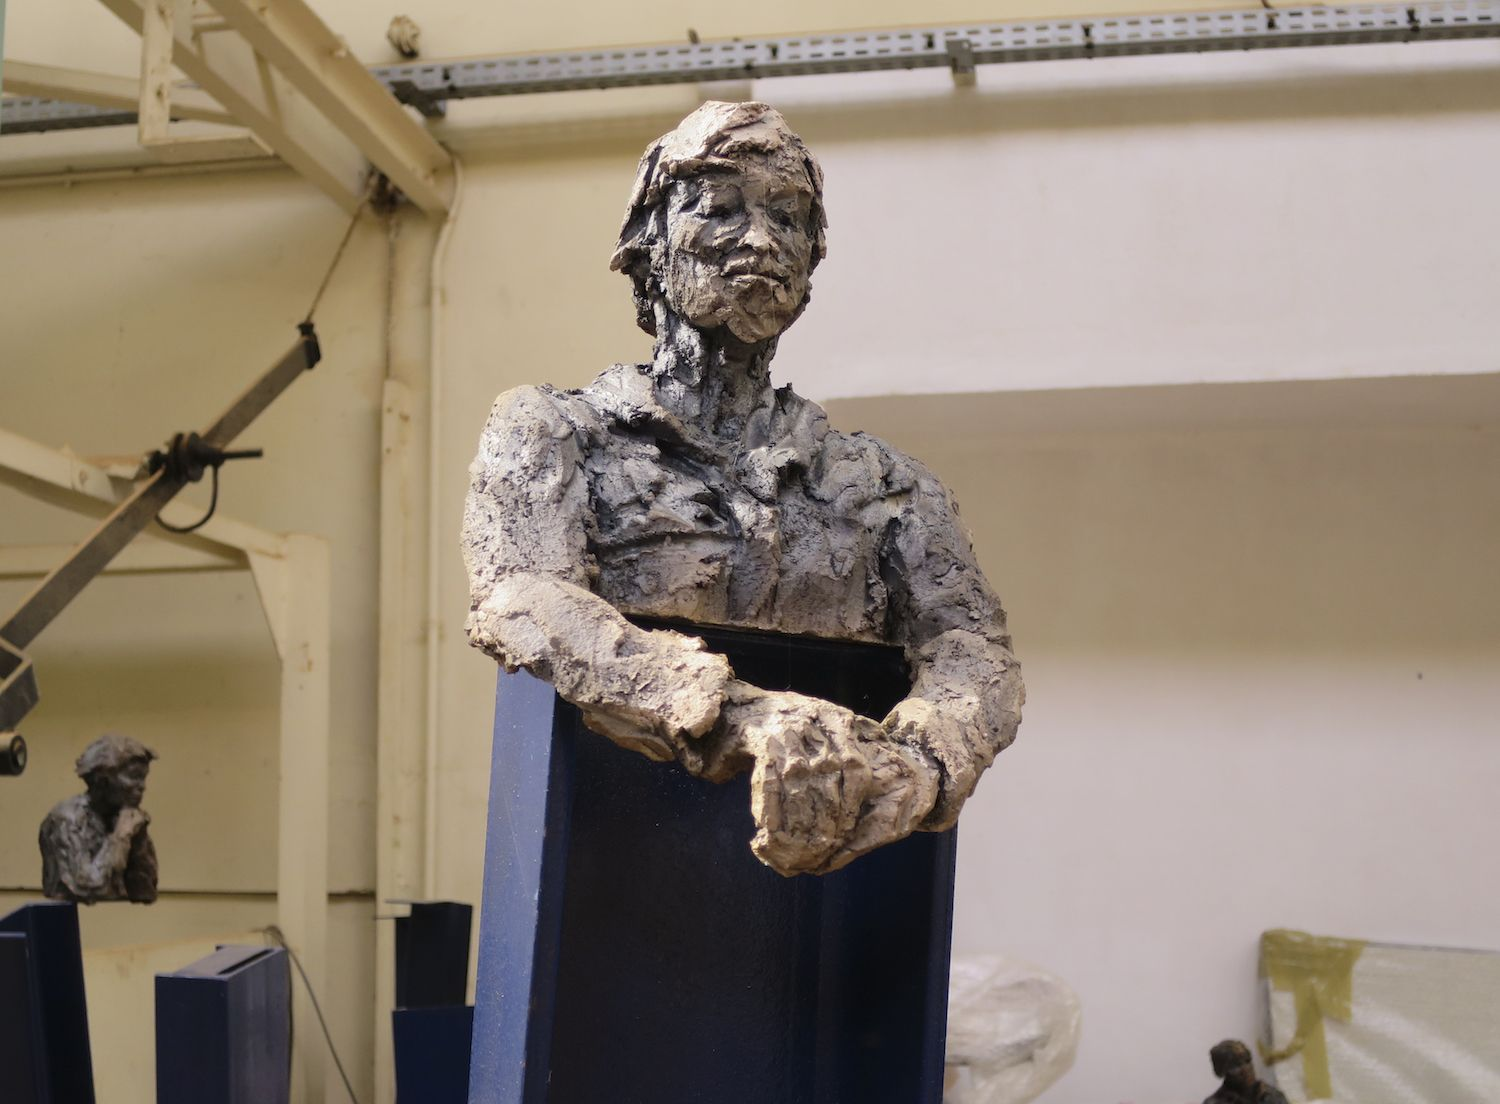 OFW's/Hom's V,Cécile Raynal,Sculpture